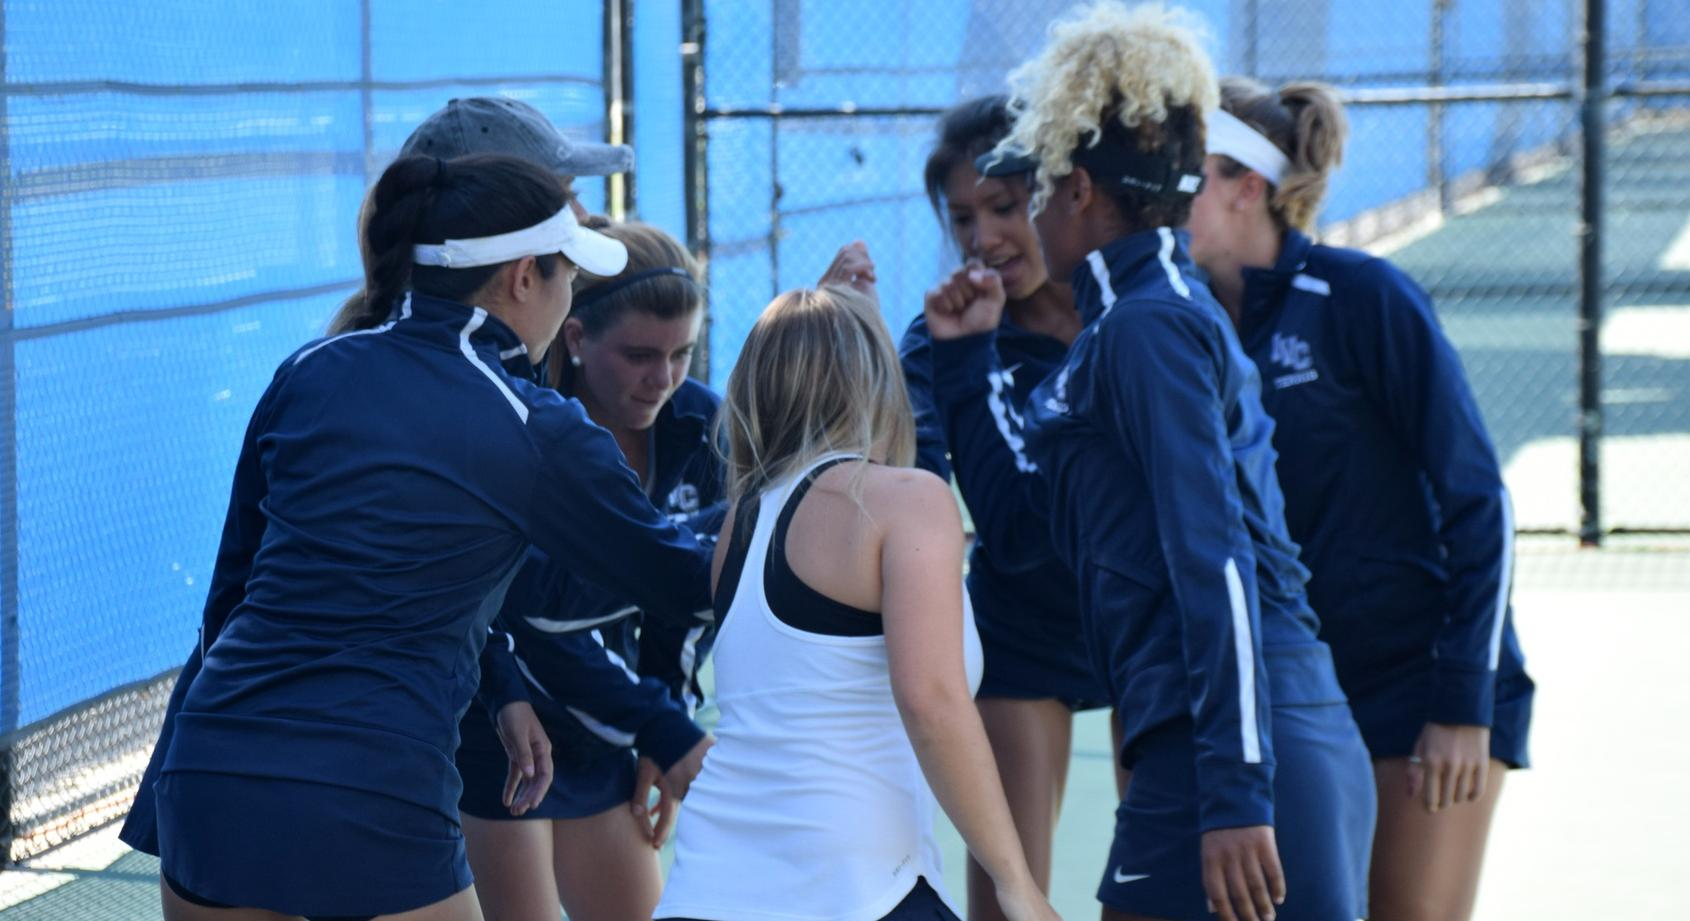 Women's tennis team ranked No. 3 in ITA Southern California poll